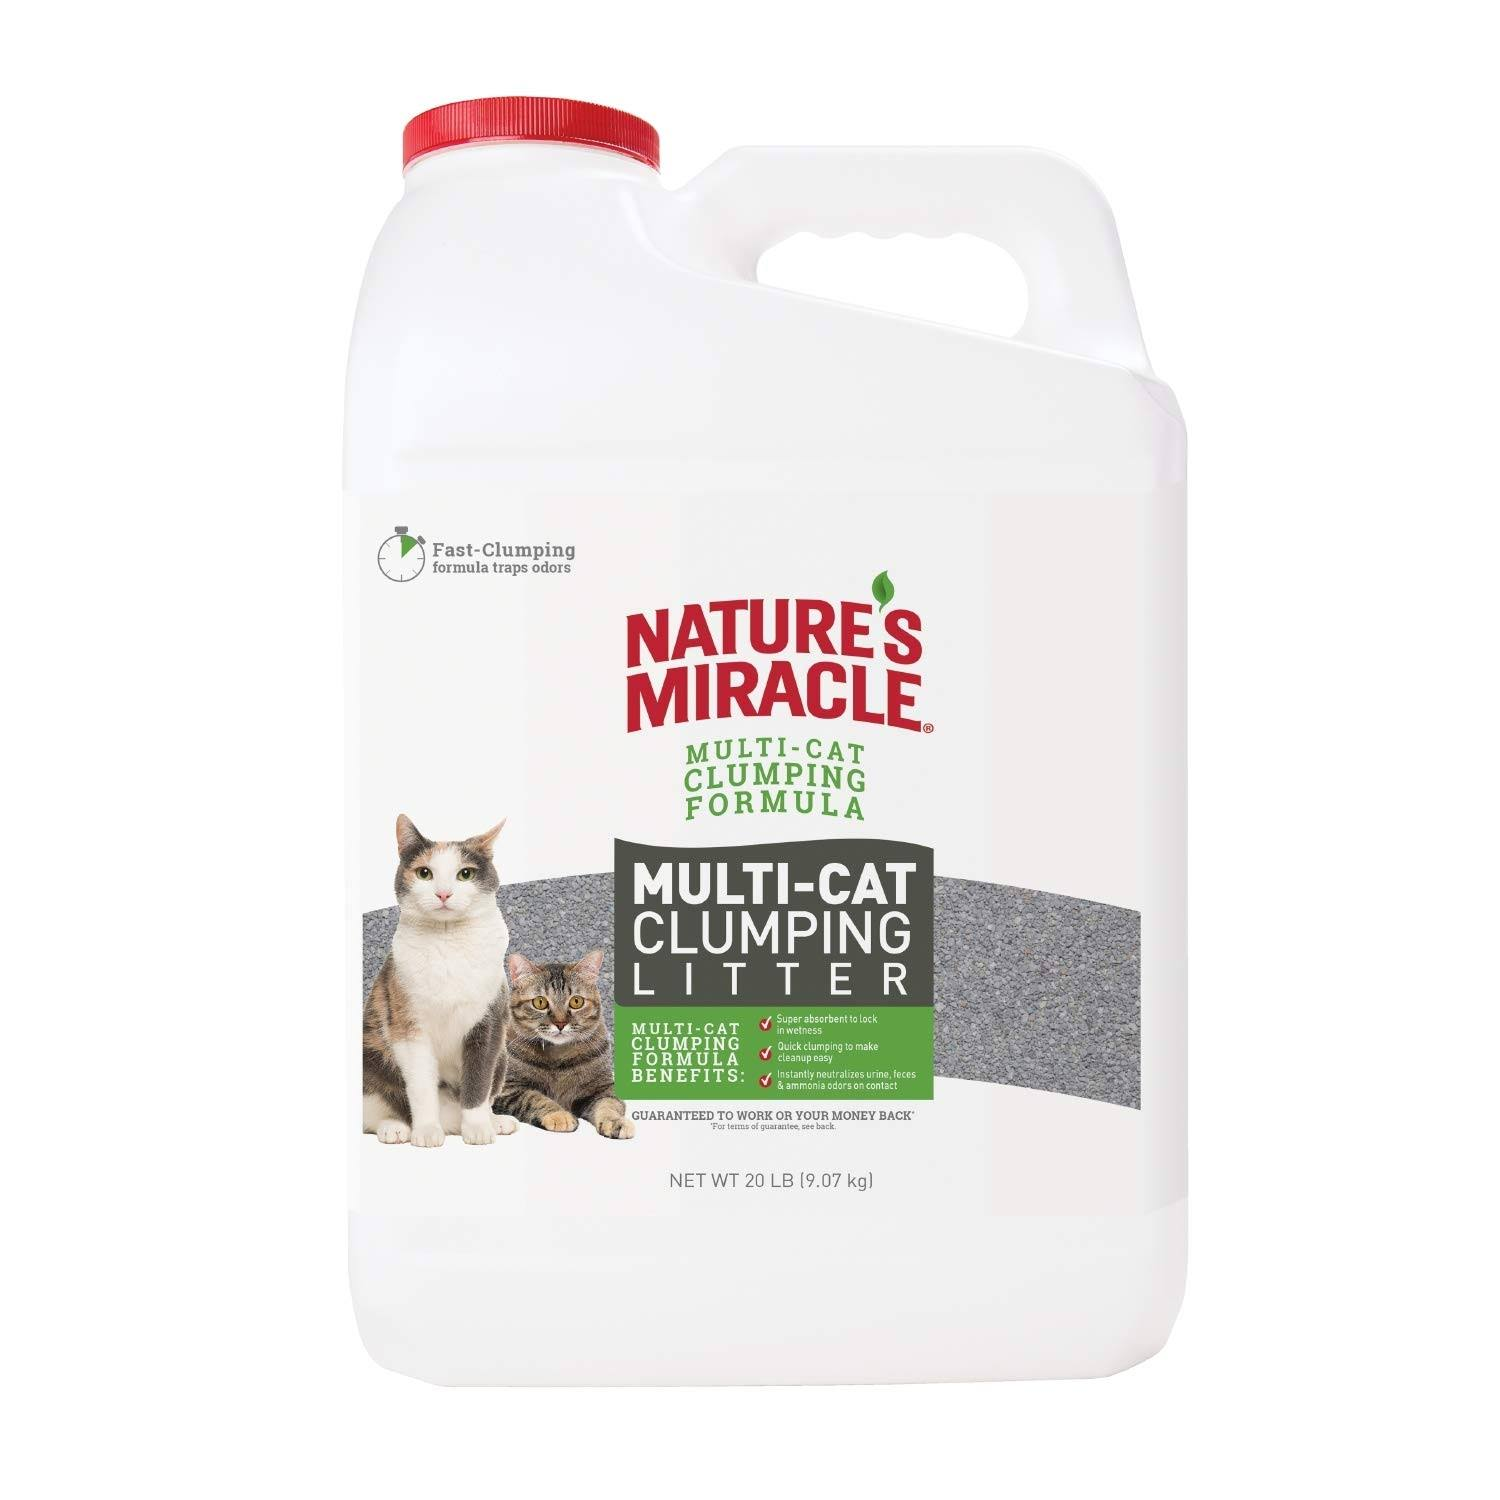 Nature's Miracle Multi-Cat Clumping Clay Cat Litter, 20-lb